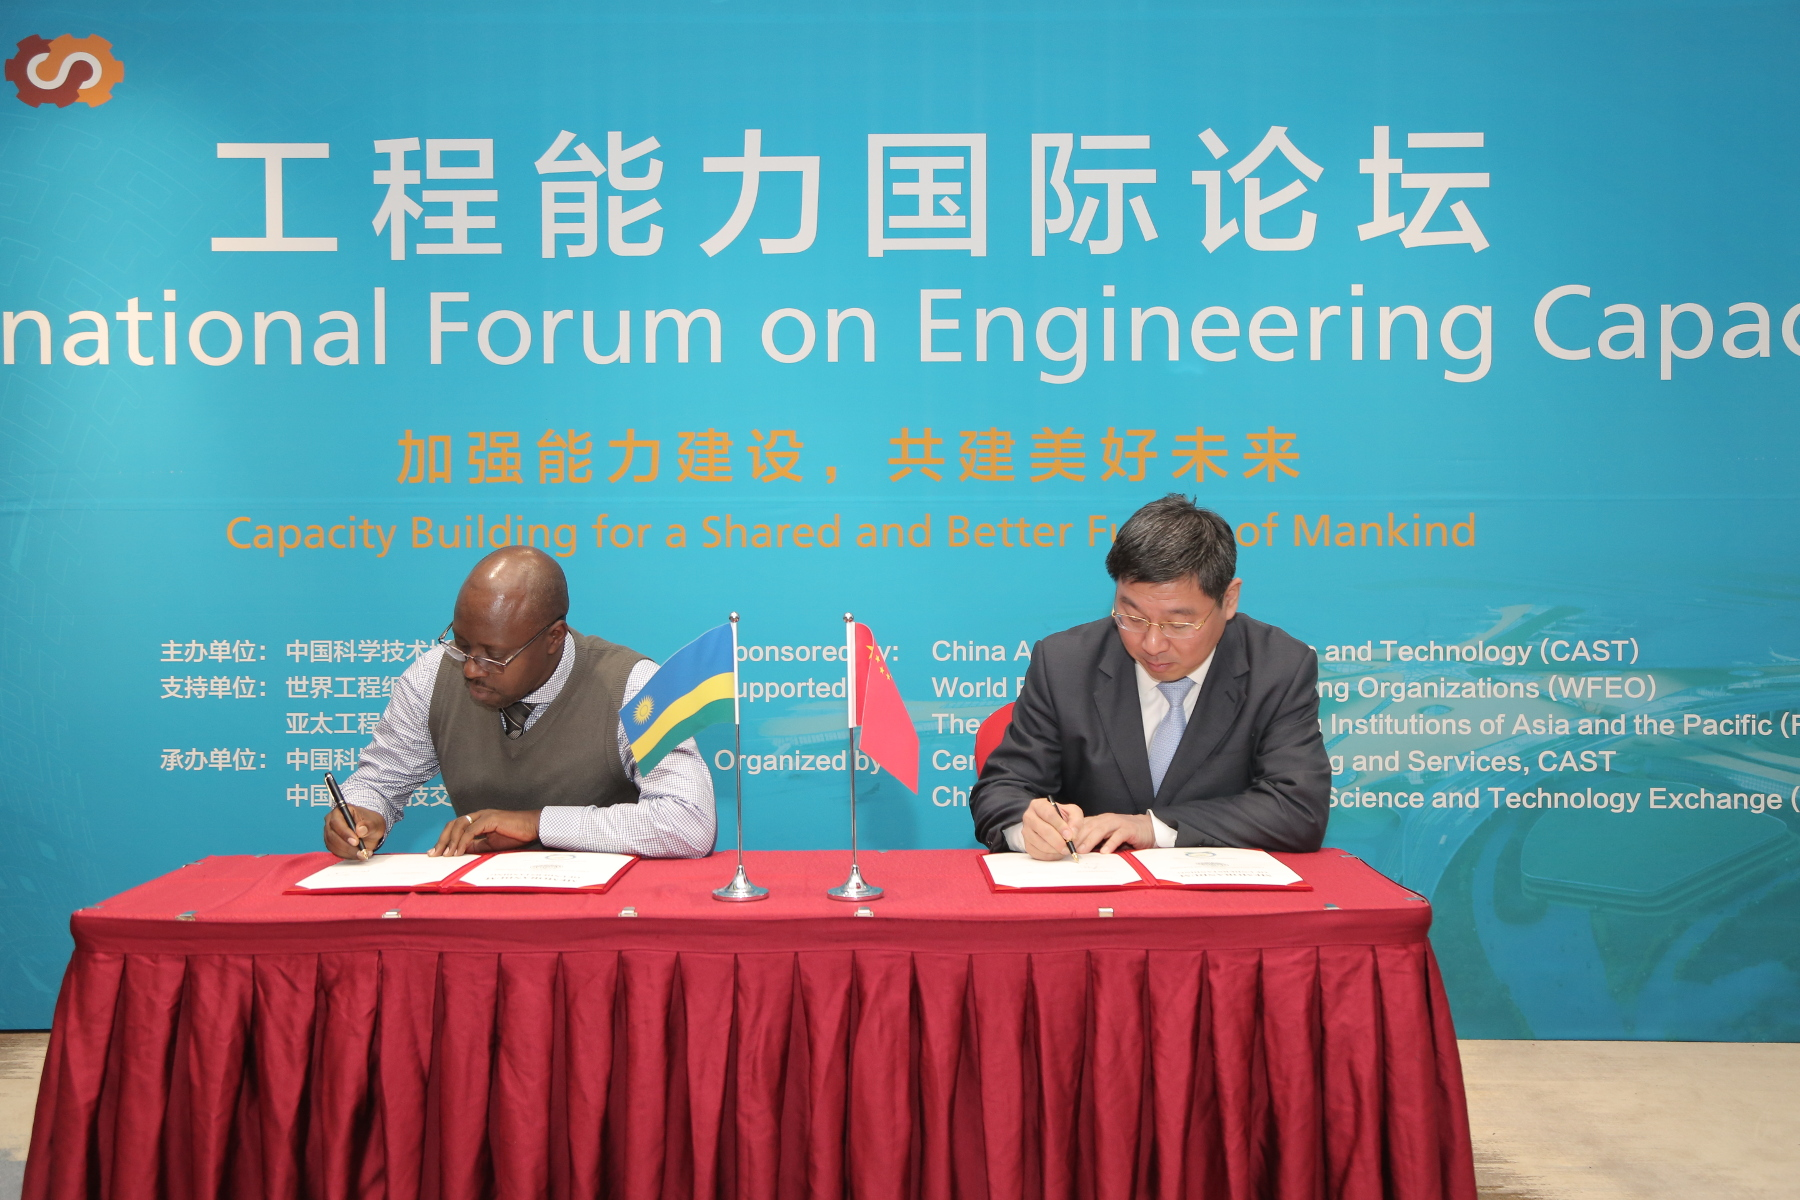 MOU between Institution of Engineers Rwanda and CAST